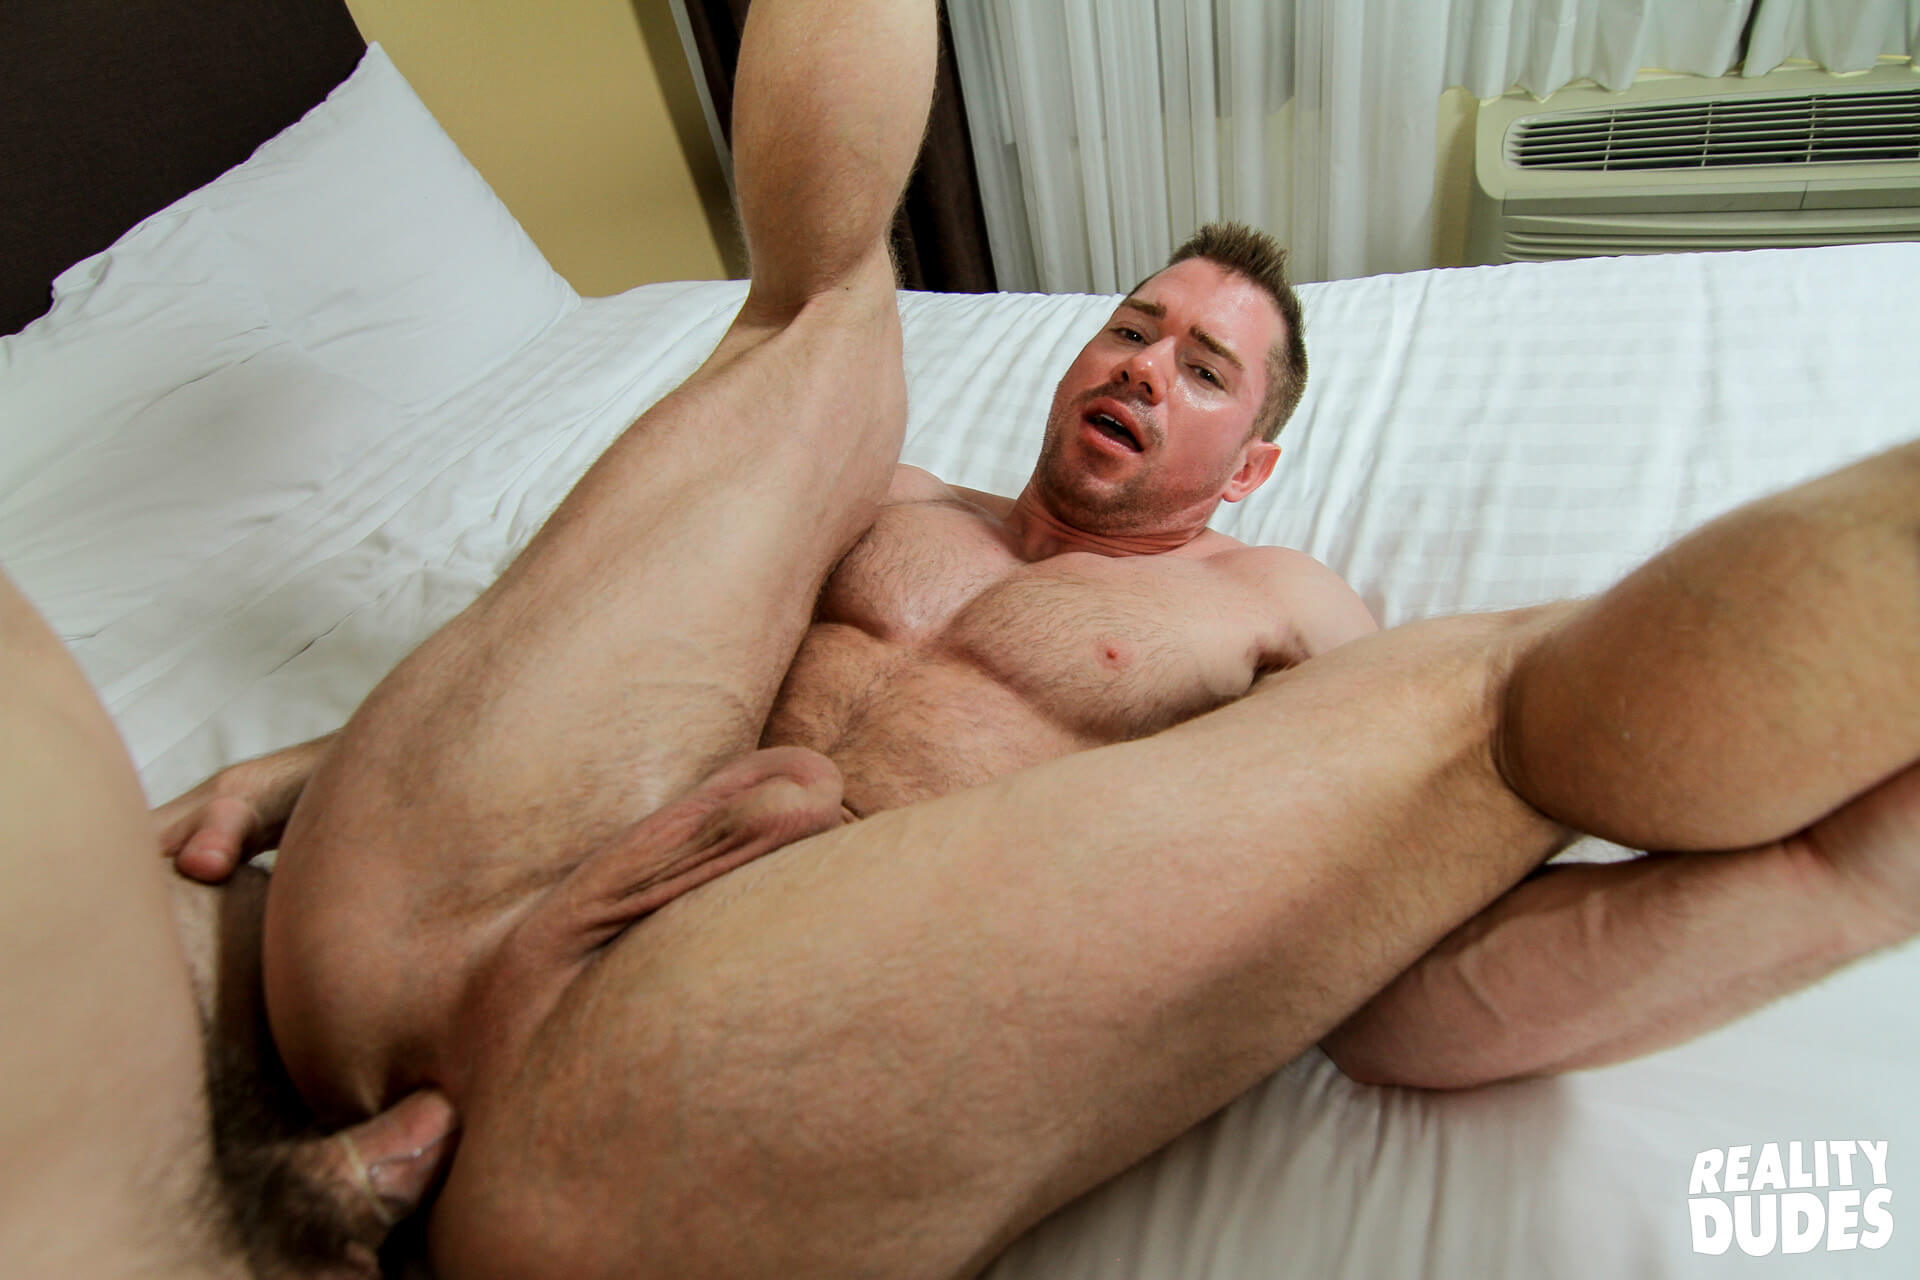 reality dudes str8 chaser beau gay porn blog image 47